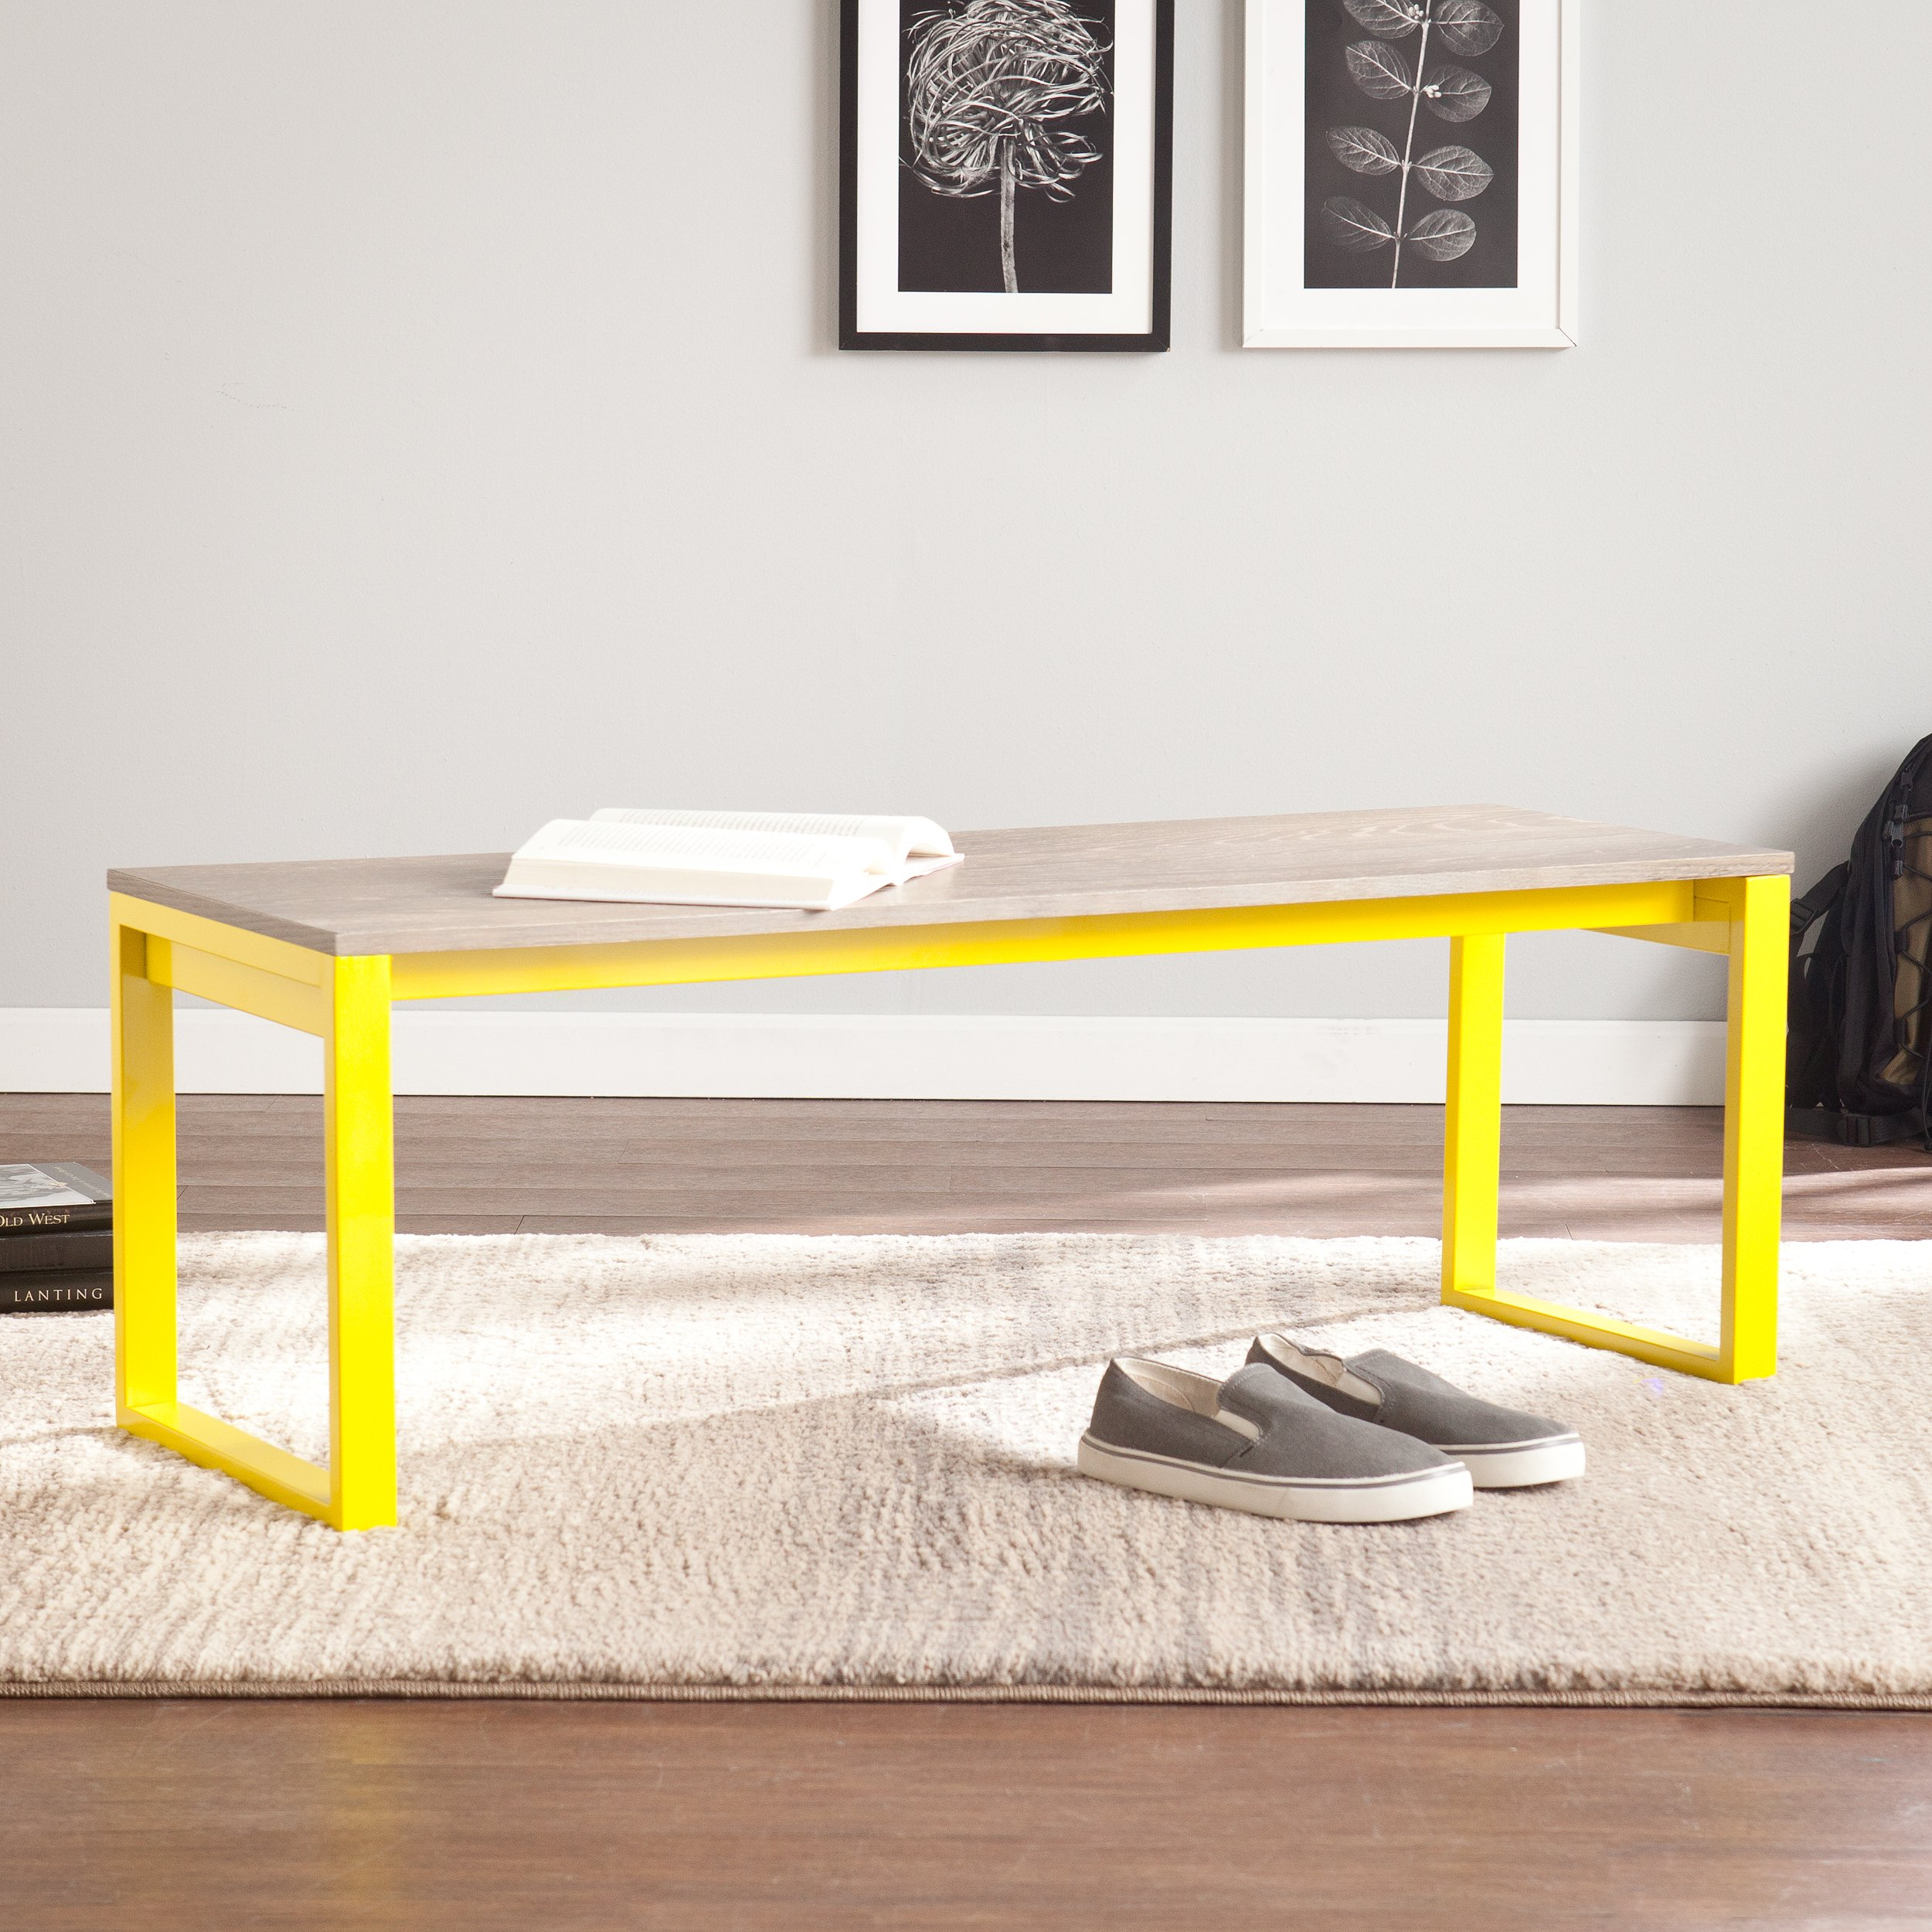 Beckett Burnt Oak Seat Bench - Citrine Frame Finish - Low Profile Design by Southern Enterprises